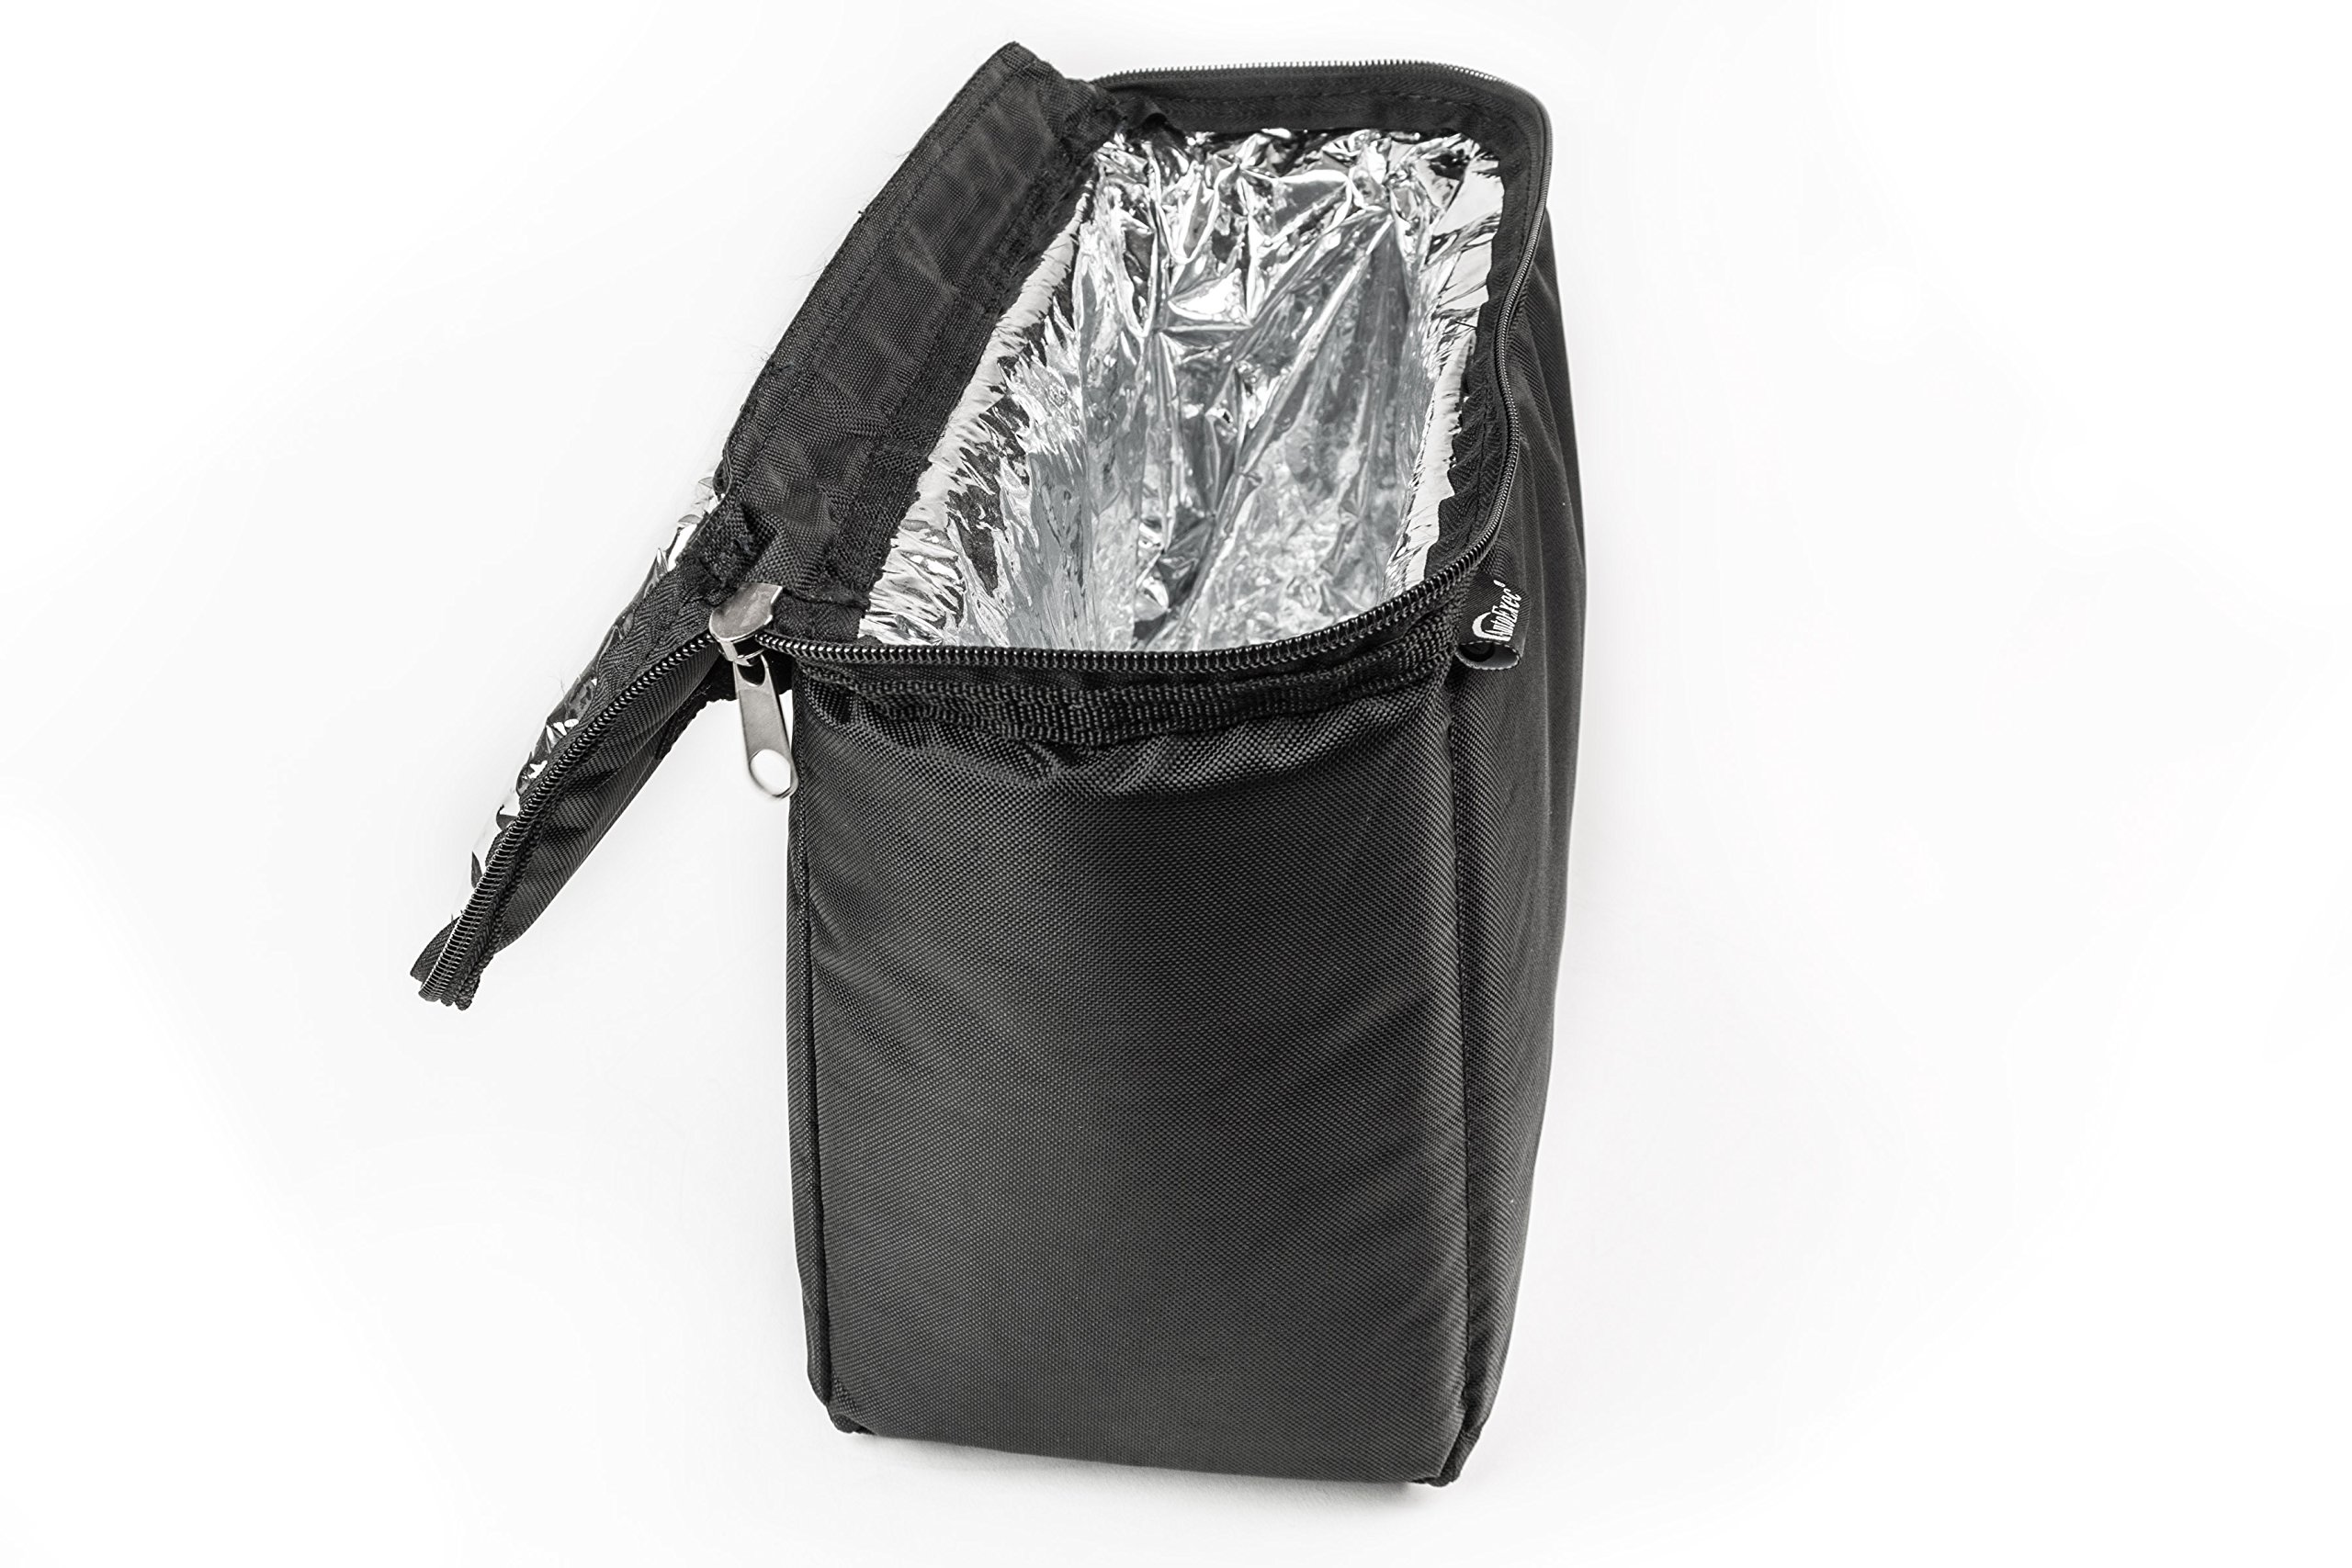 AutoExec AETote-08 Black/Grey File Tote with One Cooler and One Hanging File Holder by AutoExec (Image #8)